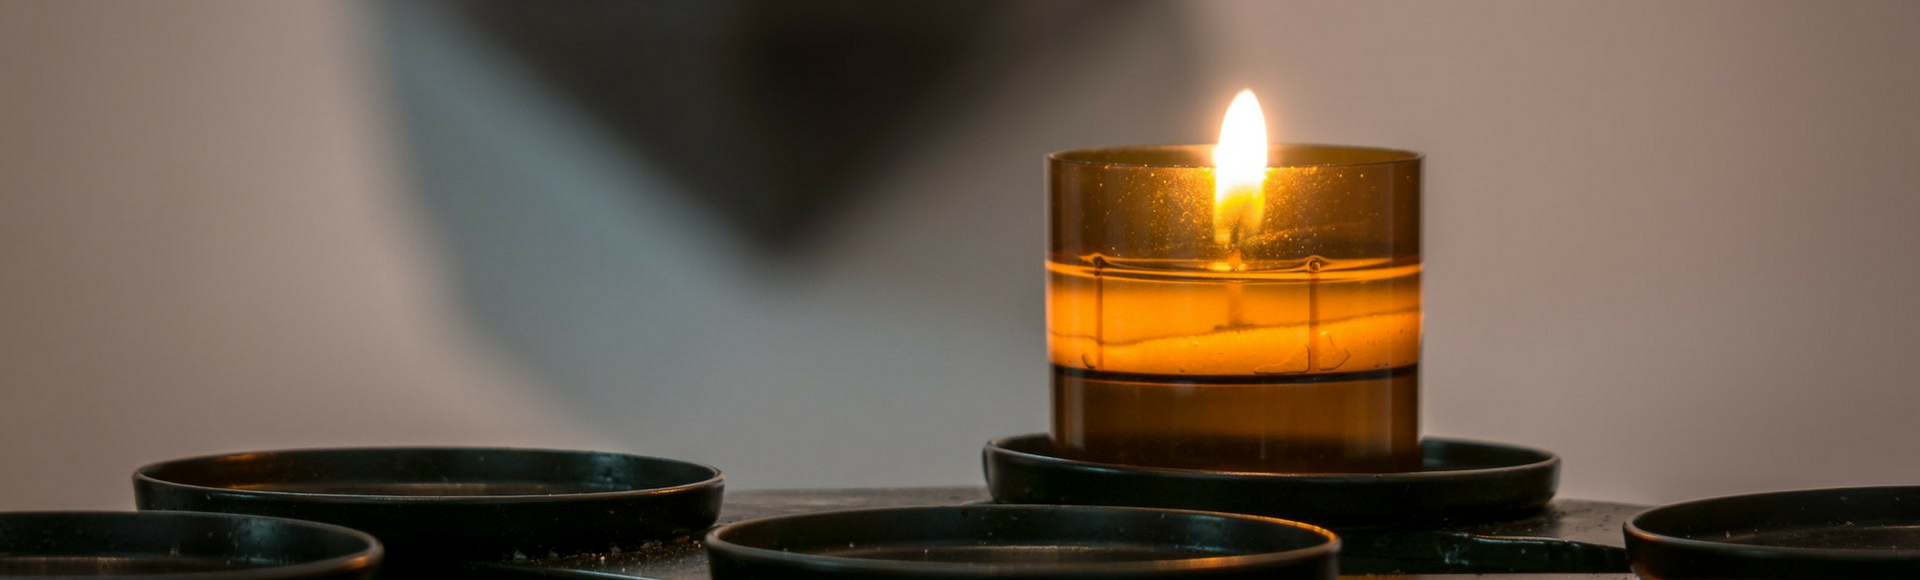 Lit candle in church reflects observance while employer provides reasonable accommodation to employee who is practicing religious beliefs.